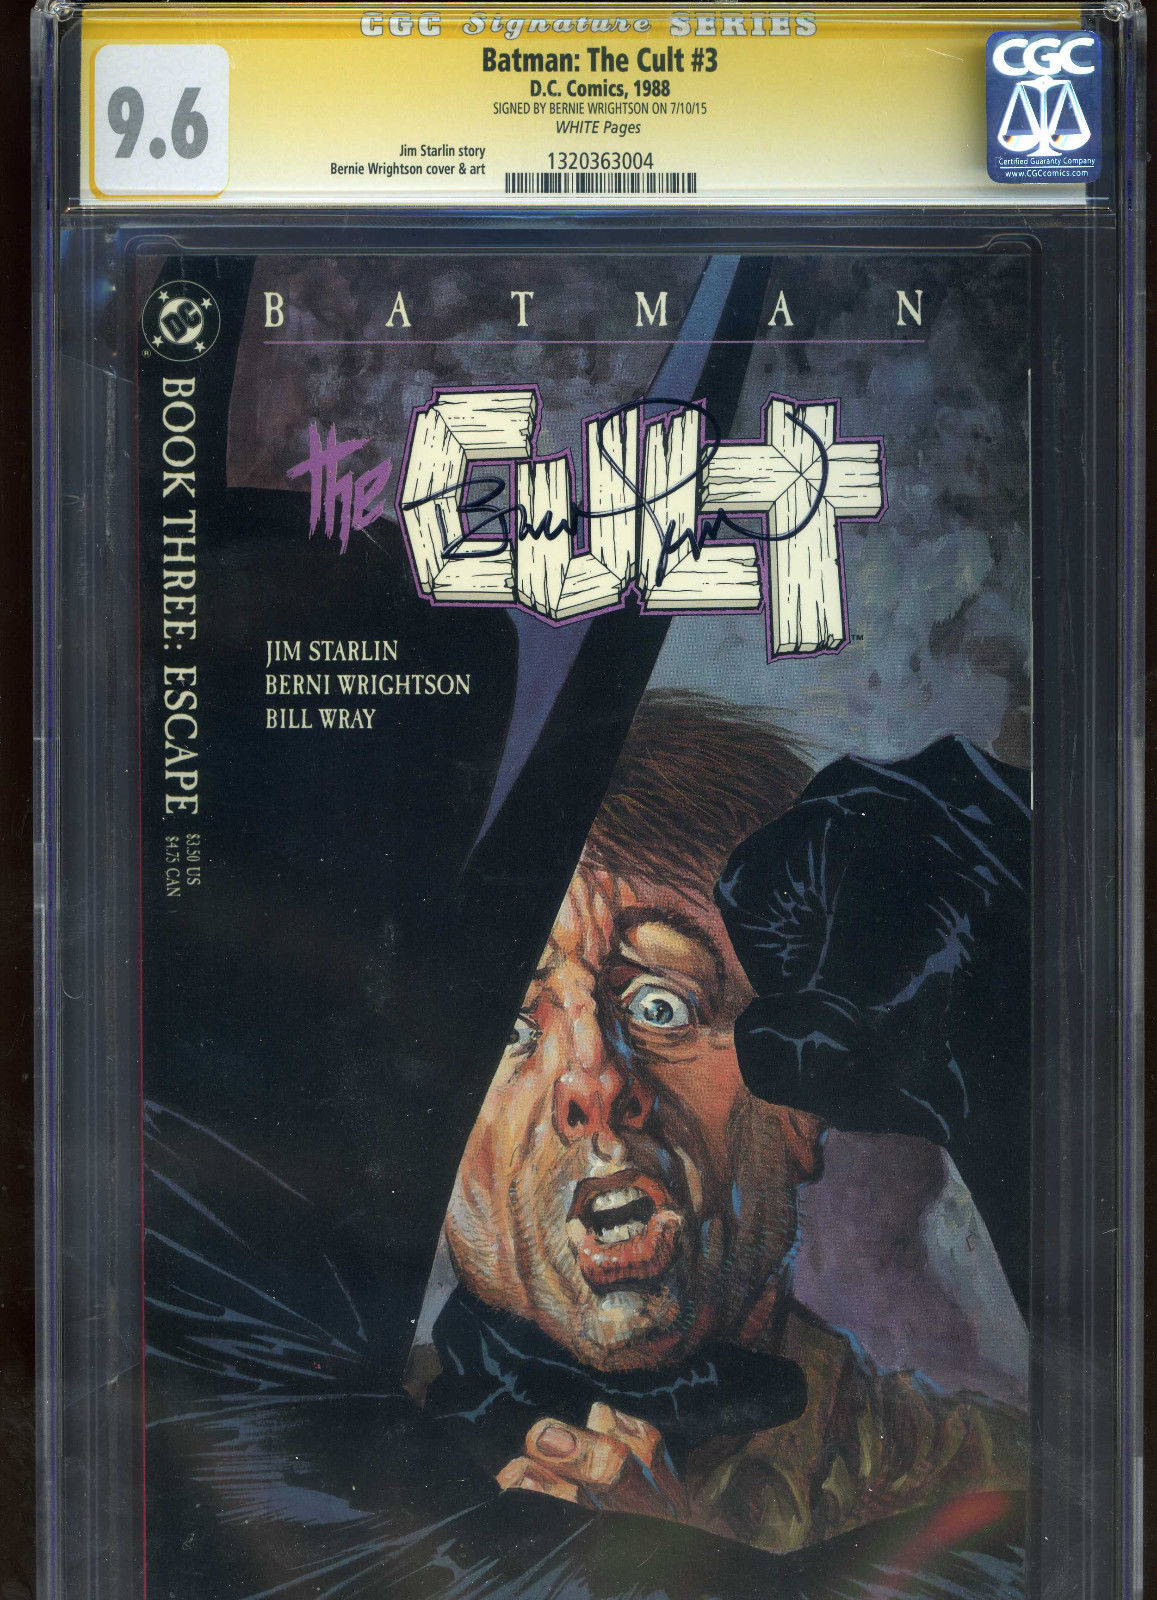 Batman: The Cult #3 CGC 9.6 SS Bernie Wrightson signed autograph